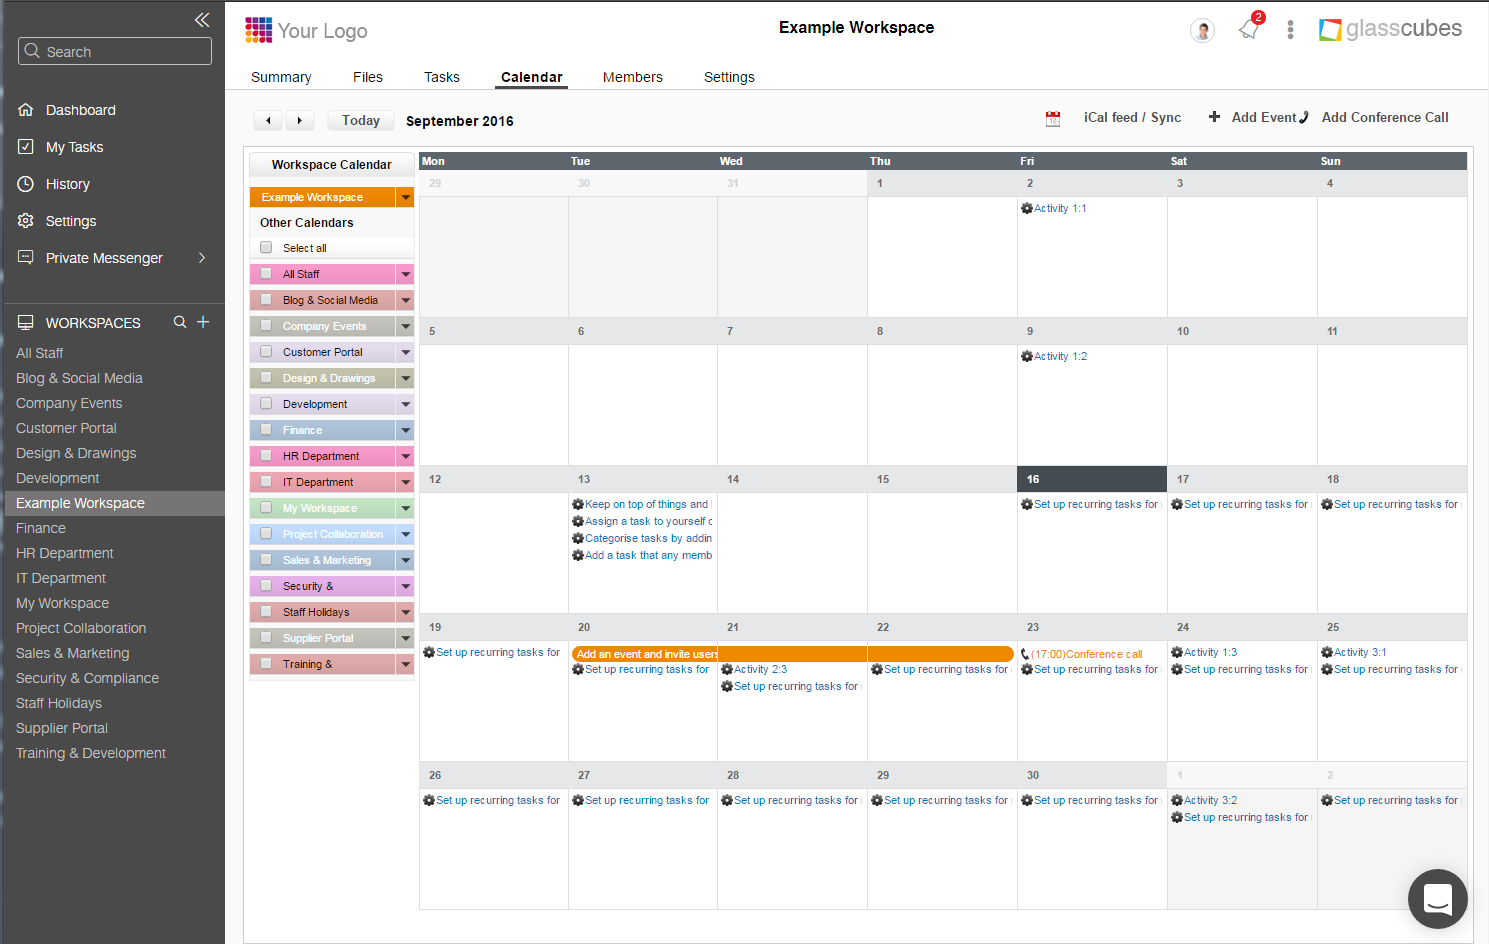 Shared and private calendars